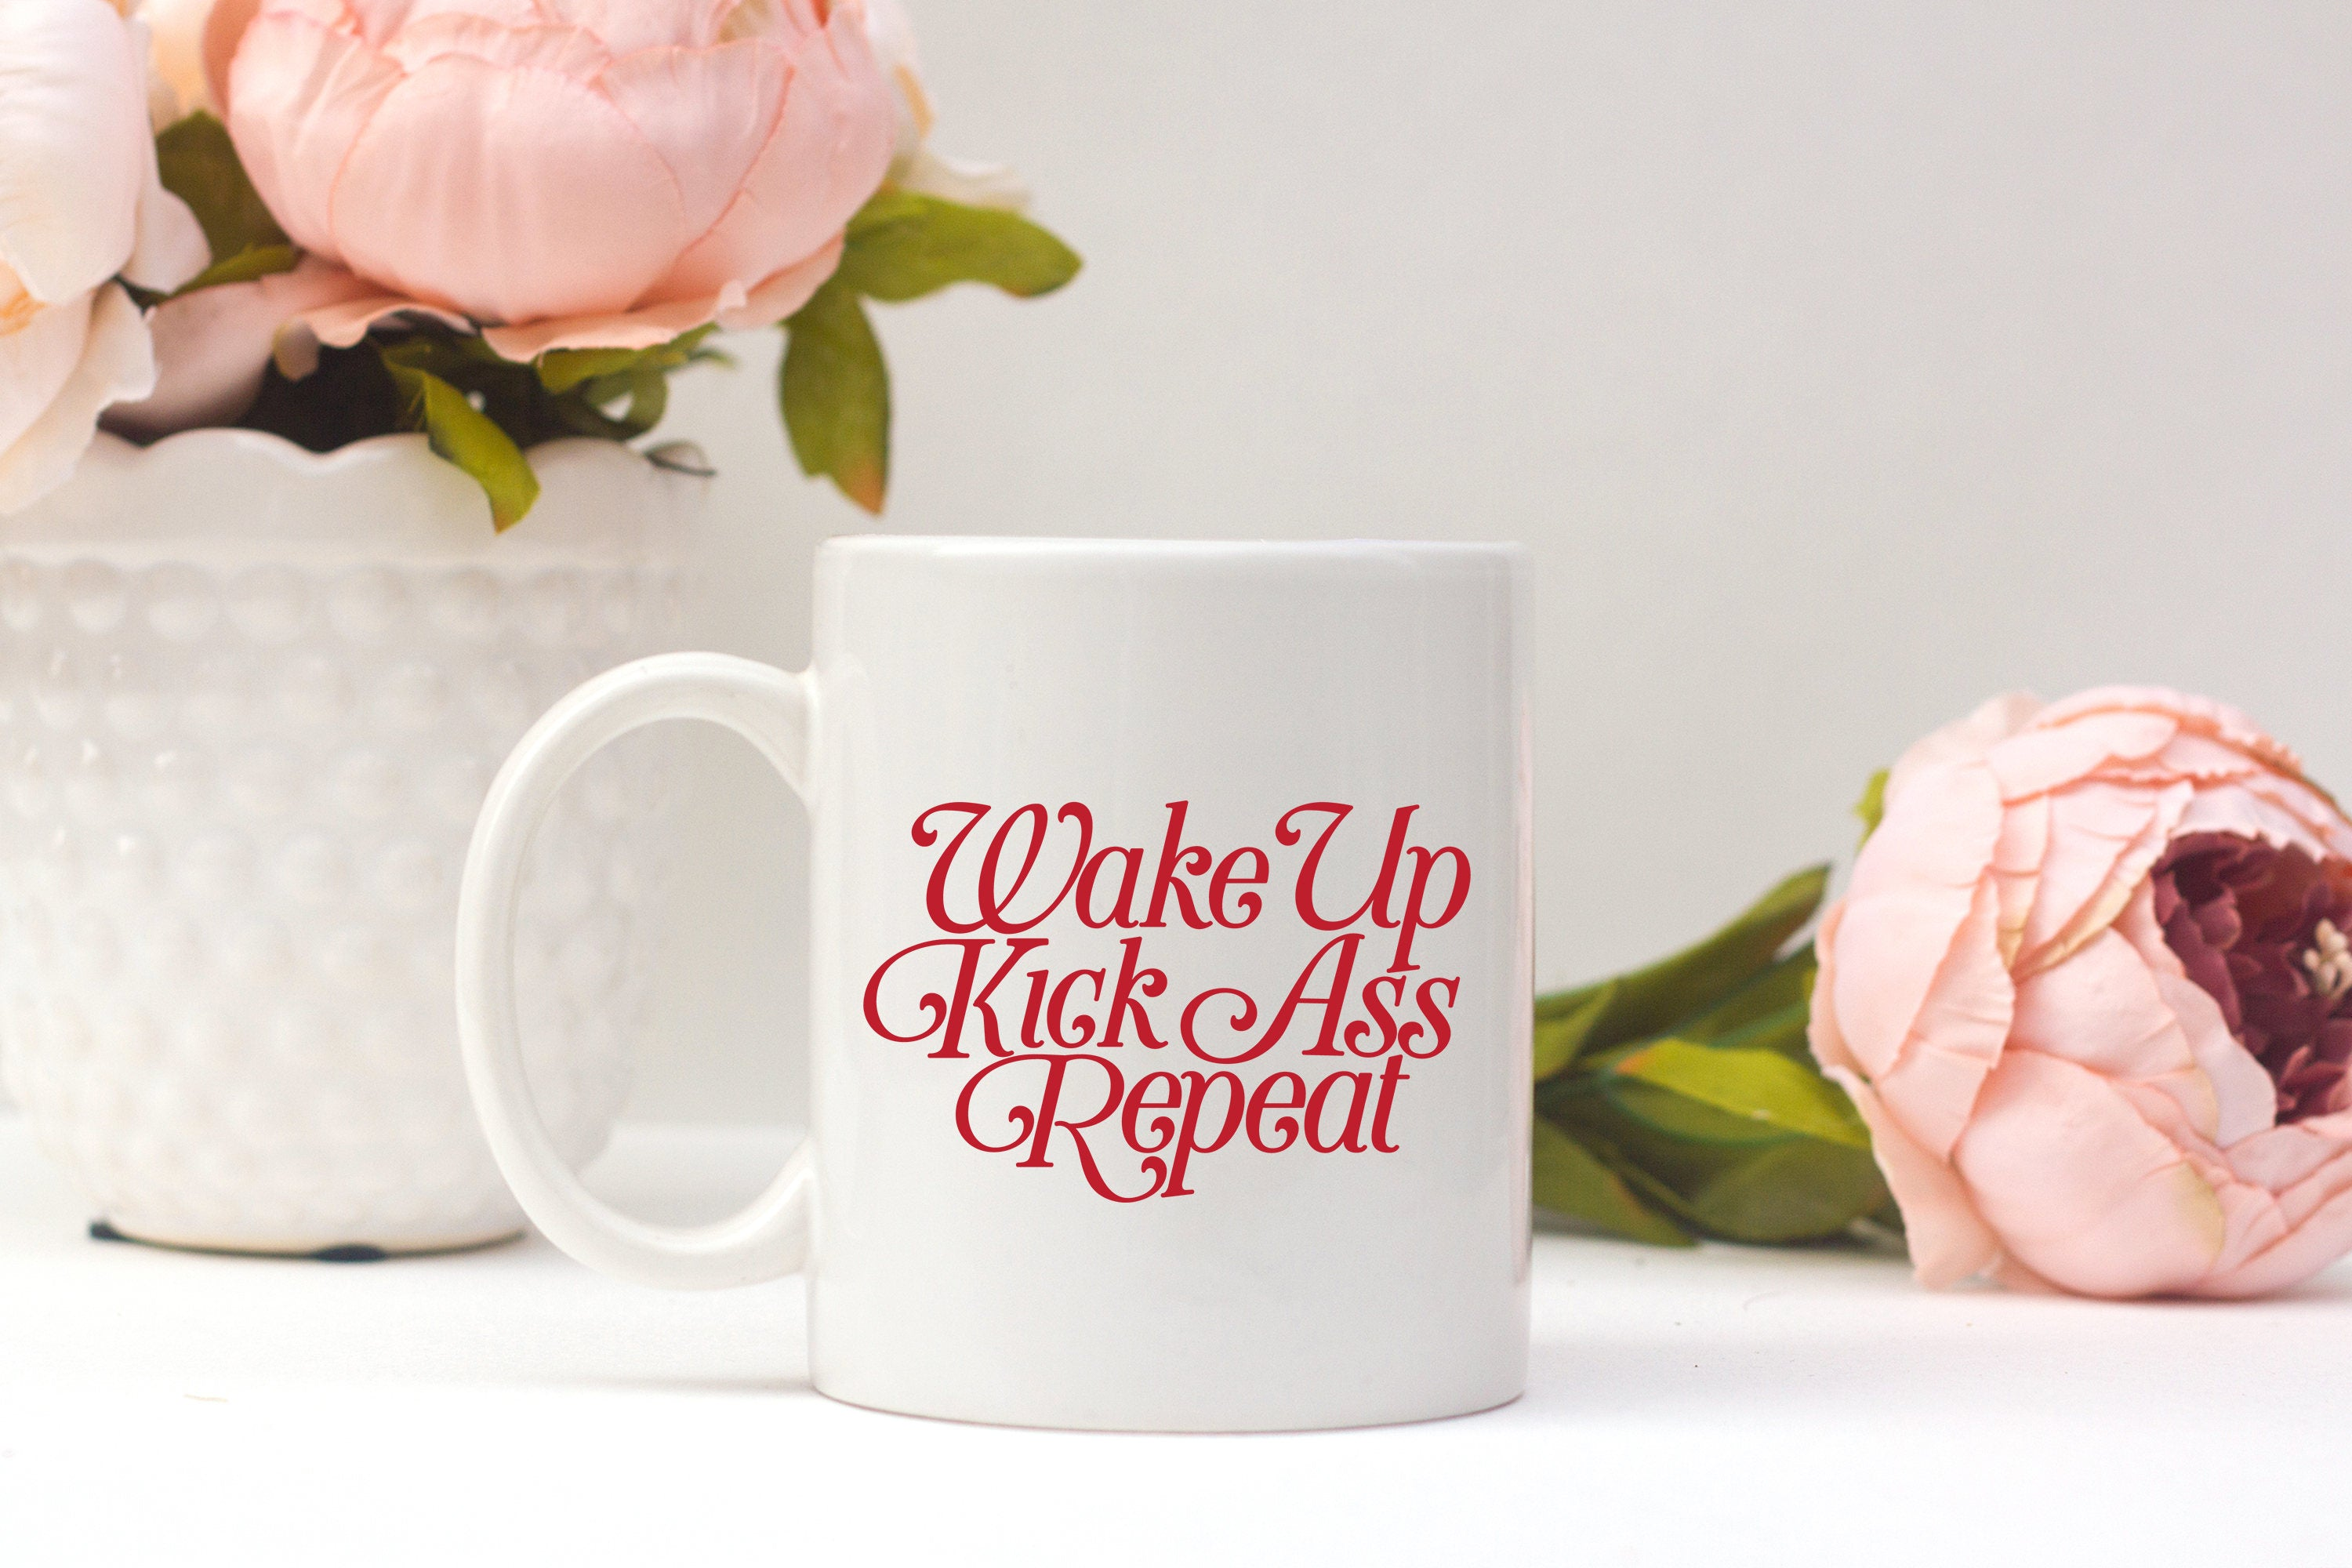 Wake Up, Kick Ass, Repeat Ceramic Mug